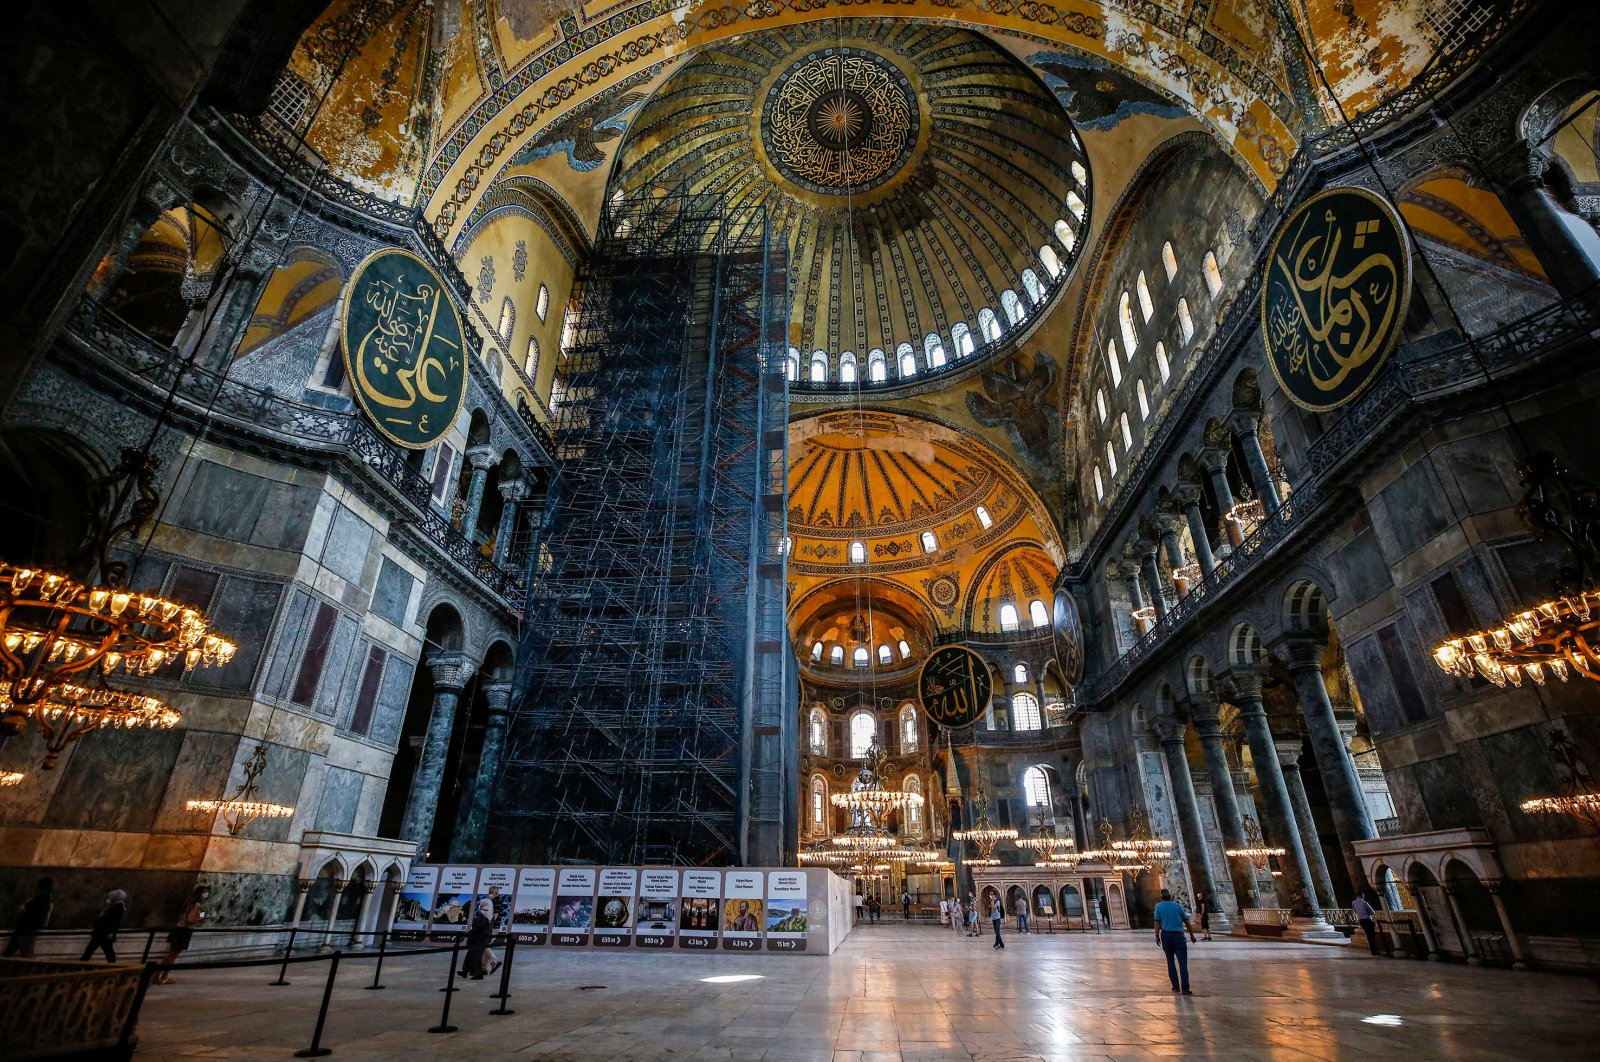 People visit the Hagia Sophia, one of Istanbul's main tourist attractions in the historic Sultanahmet district of Istanbul on Thursday, June 25, 2020. (AA PHOTO)